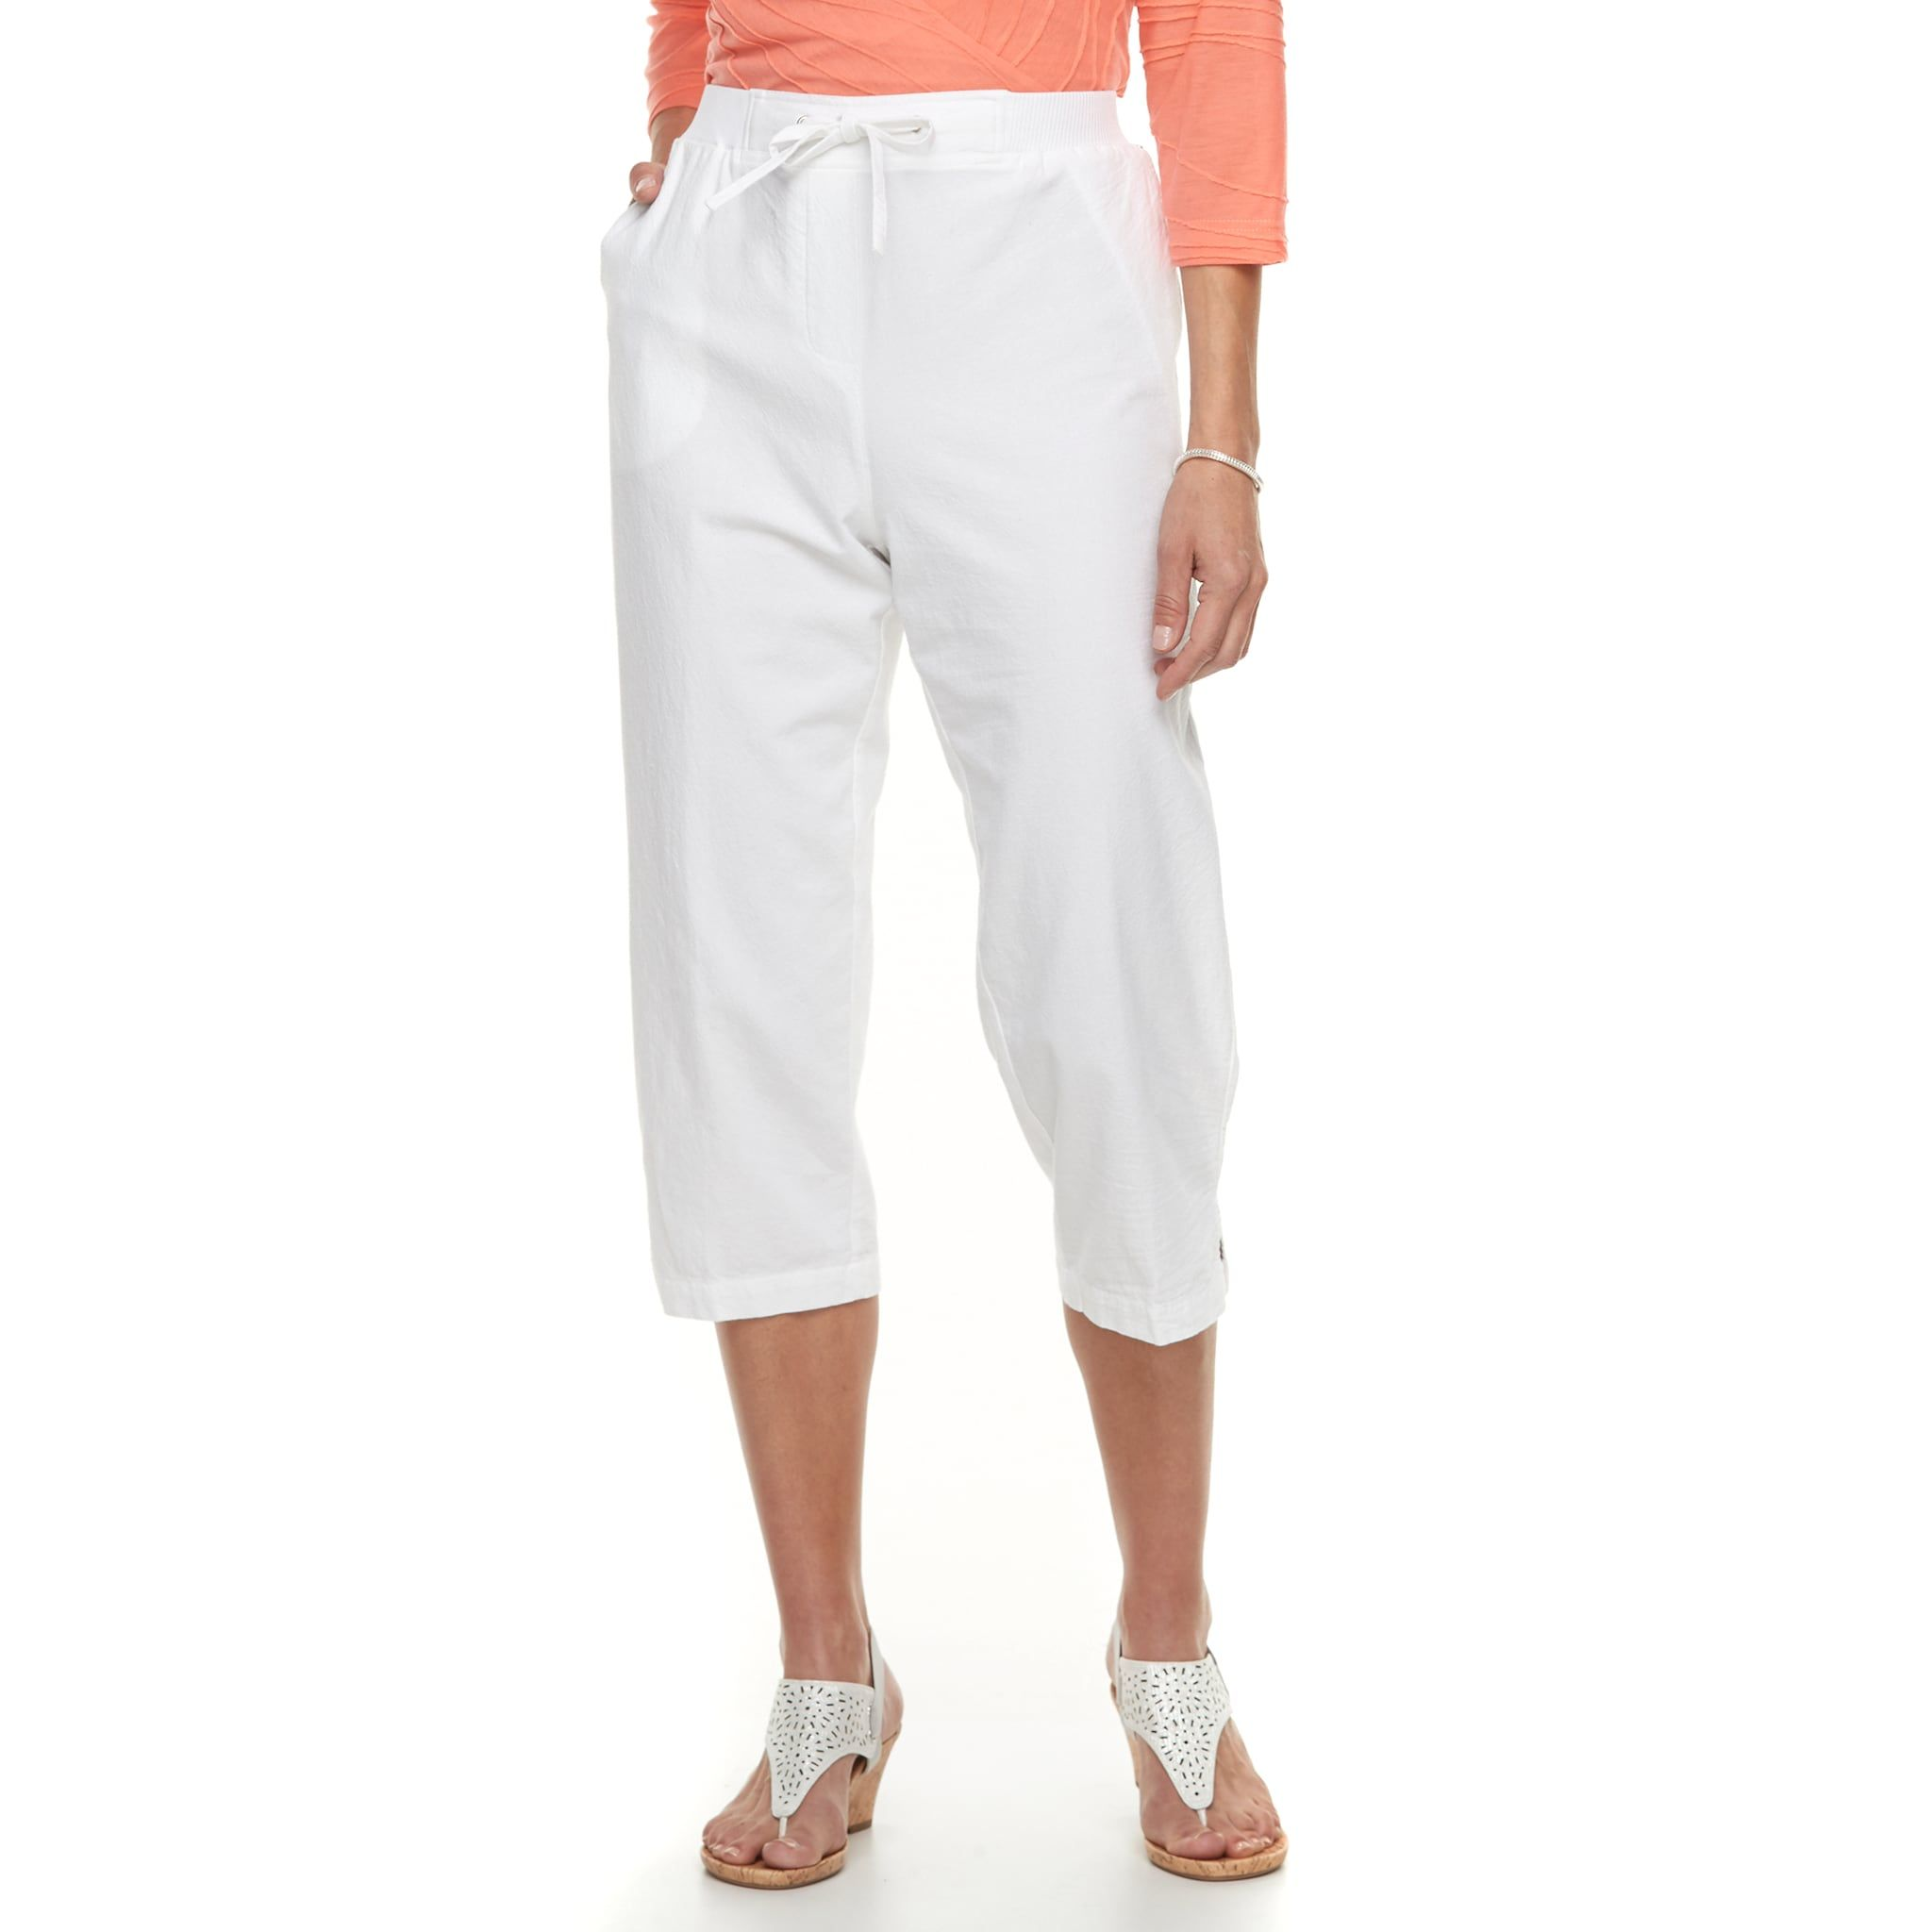 1c651281c177 Women's Cathy Daniels Sheeting Drawstring Capris | Fashion Street ...